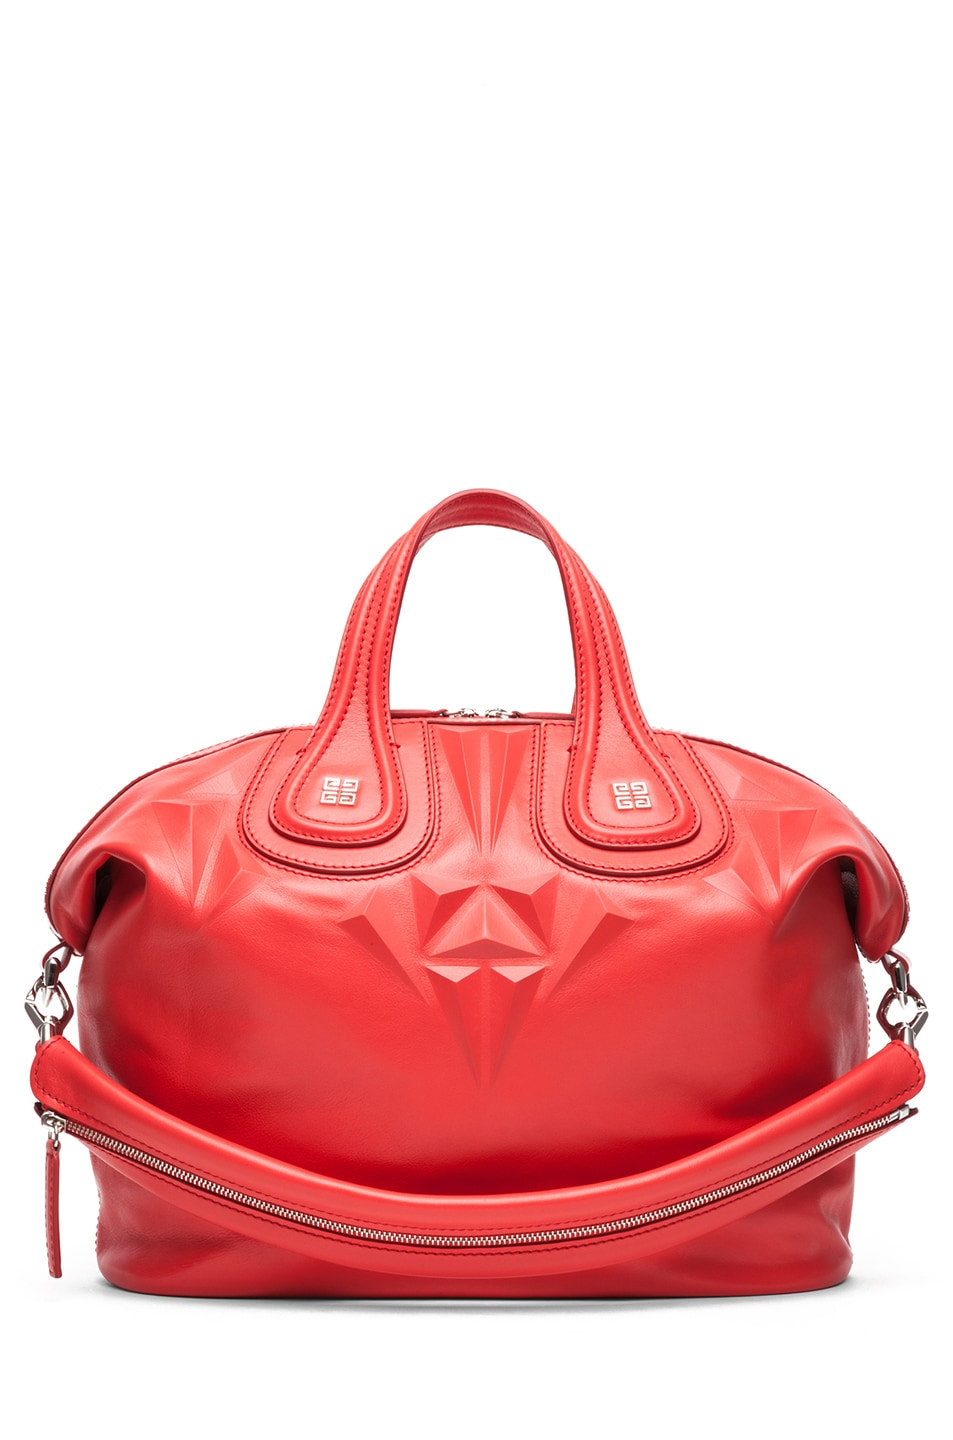 Image 1 of GIVENCHY Nightingale Medium 3D Effect in Red